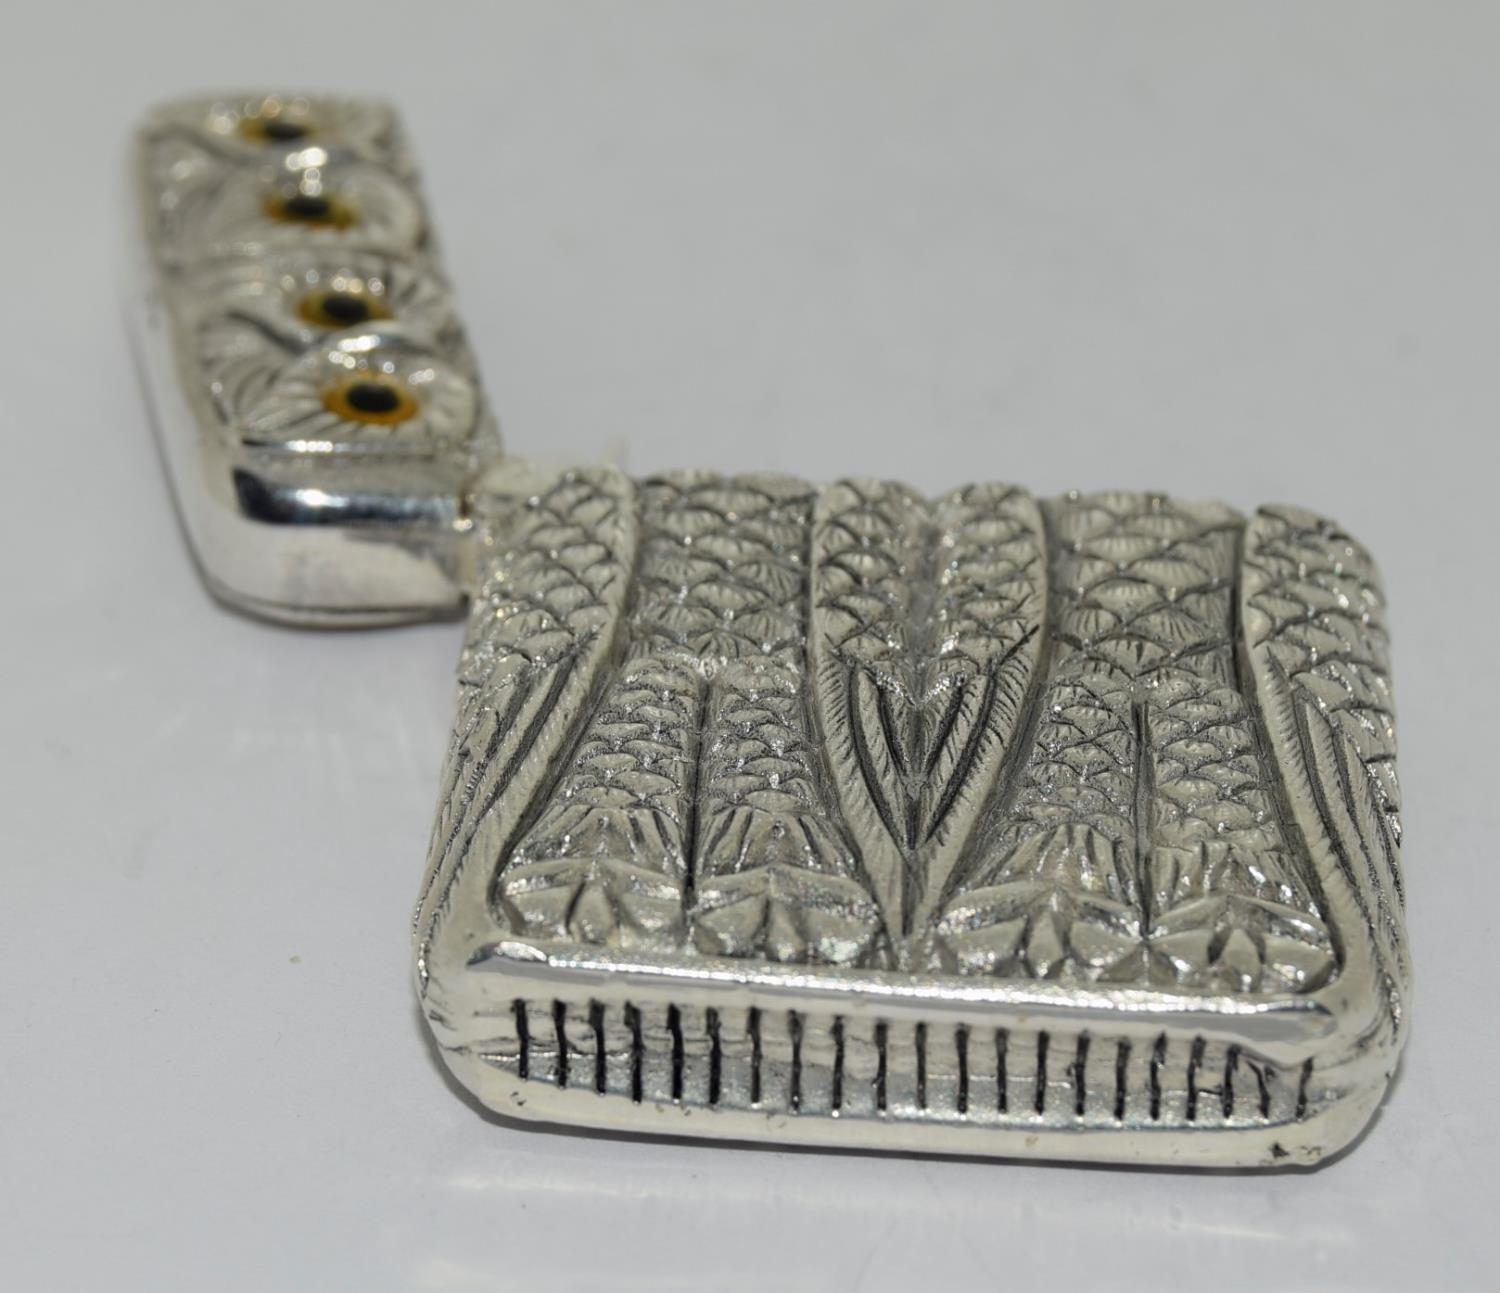 Silver plated owl vesta case - Image 3 of 4